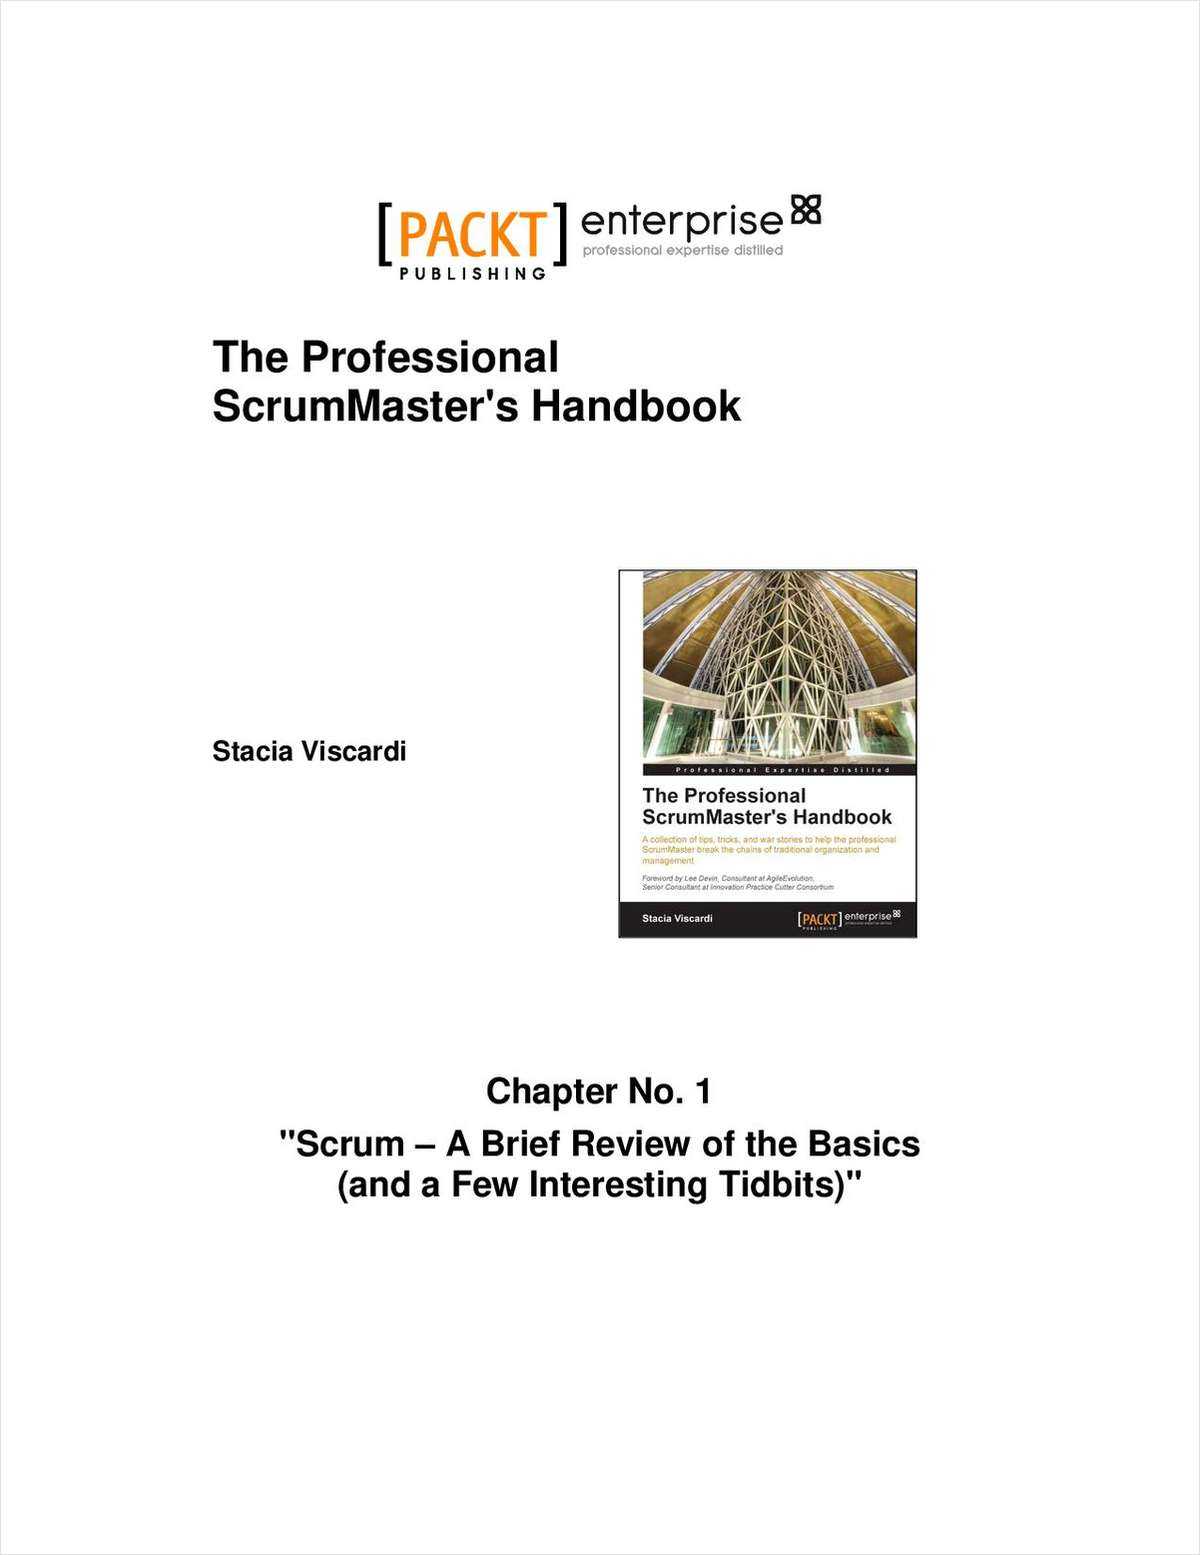 The Professional ScrumMaster's Handbook--Free 30 Page Excerpt